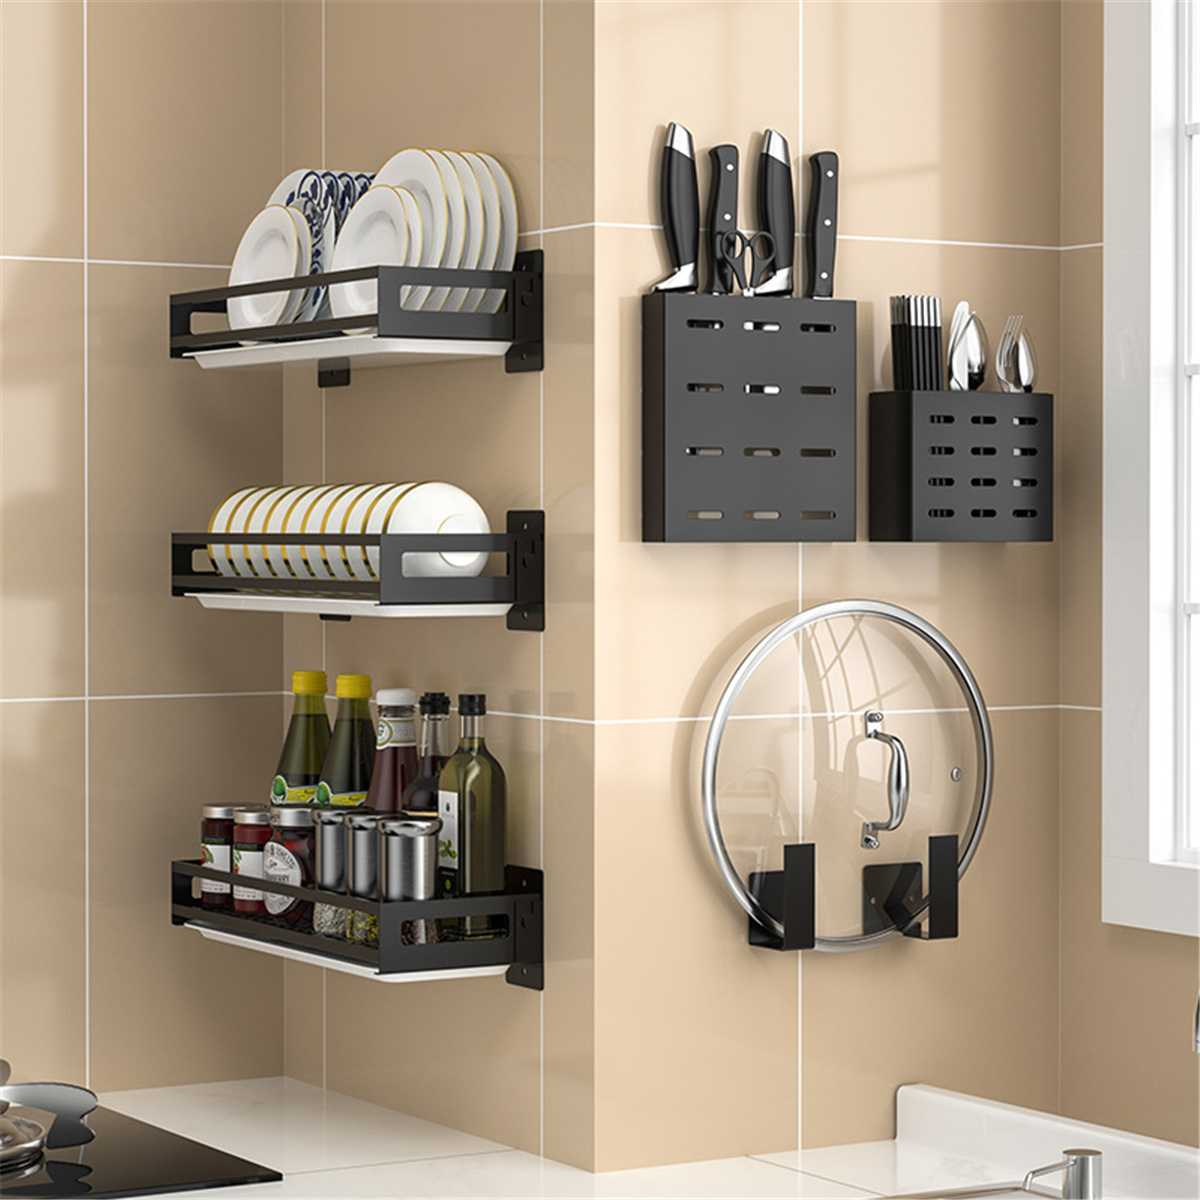 Stainless Steel Kitchen Bathroom Shelf Wall Hanging Non-Punching Pot Cover Cutter Shelf Condiment Storage Rack Dish Drying Rack